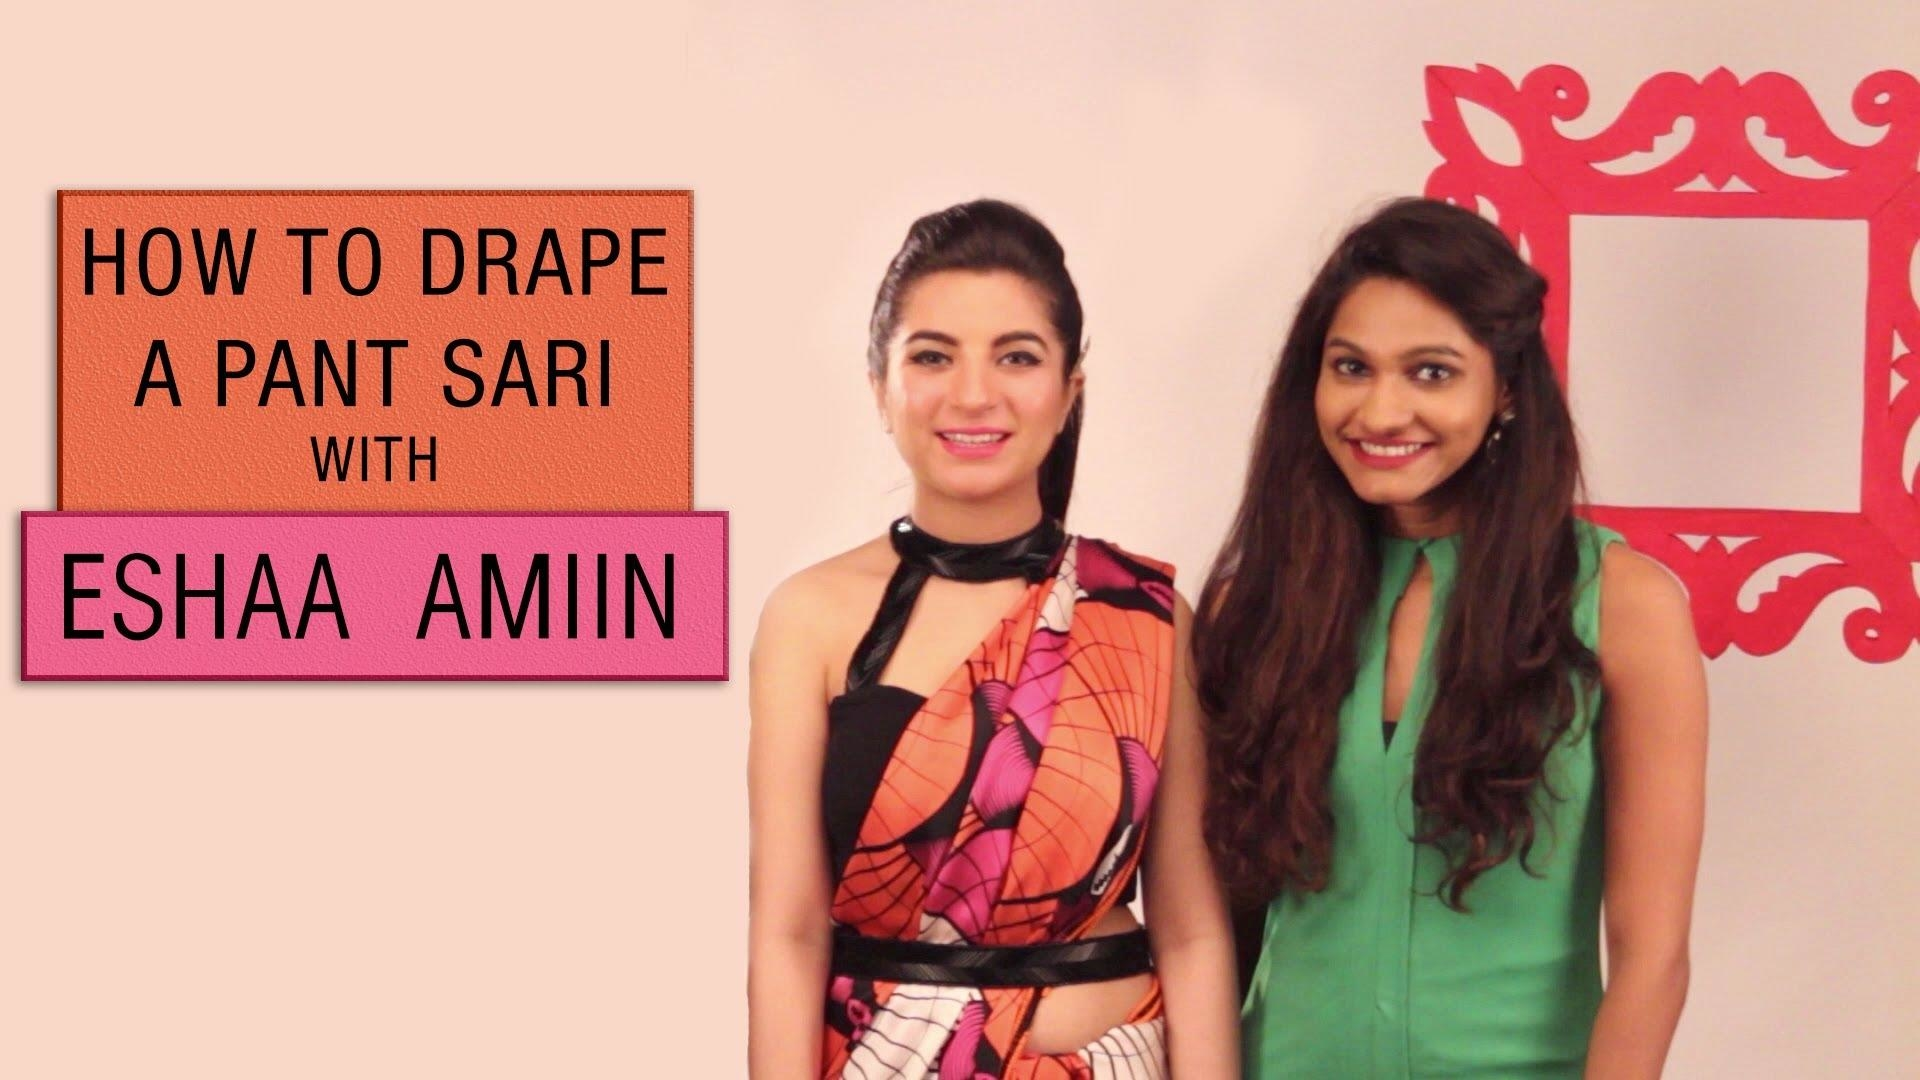 #CelebrityStylist @eshaamiin shows us how to drape a fuss free pant sari just perfect for your next desi occasion! Watch Now! ▶️